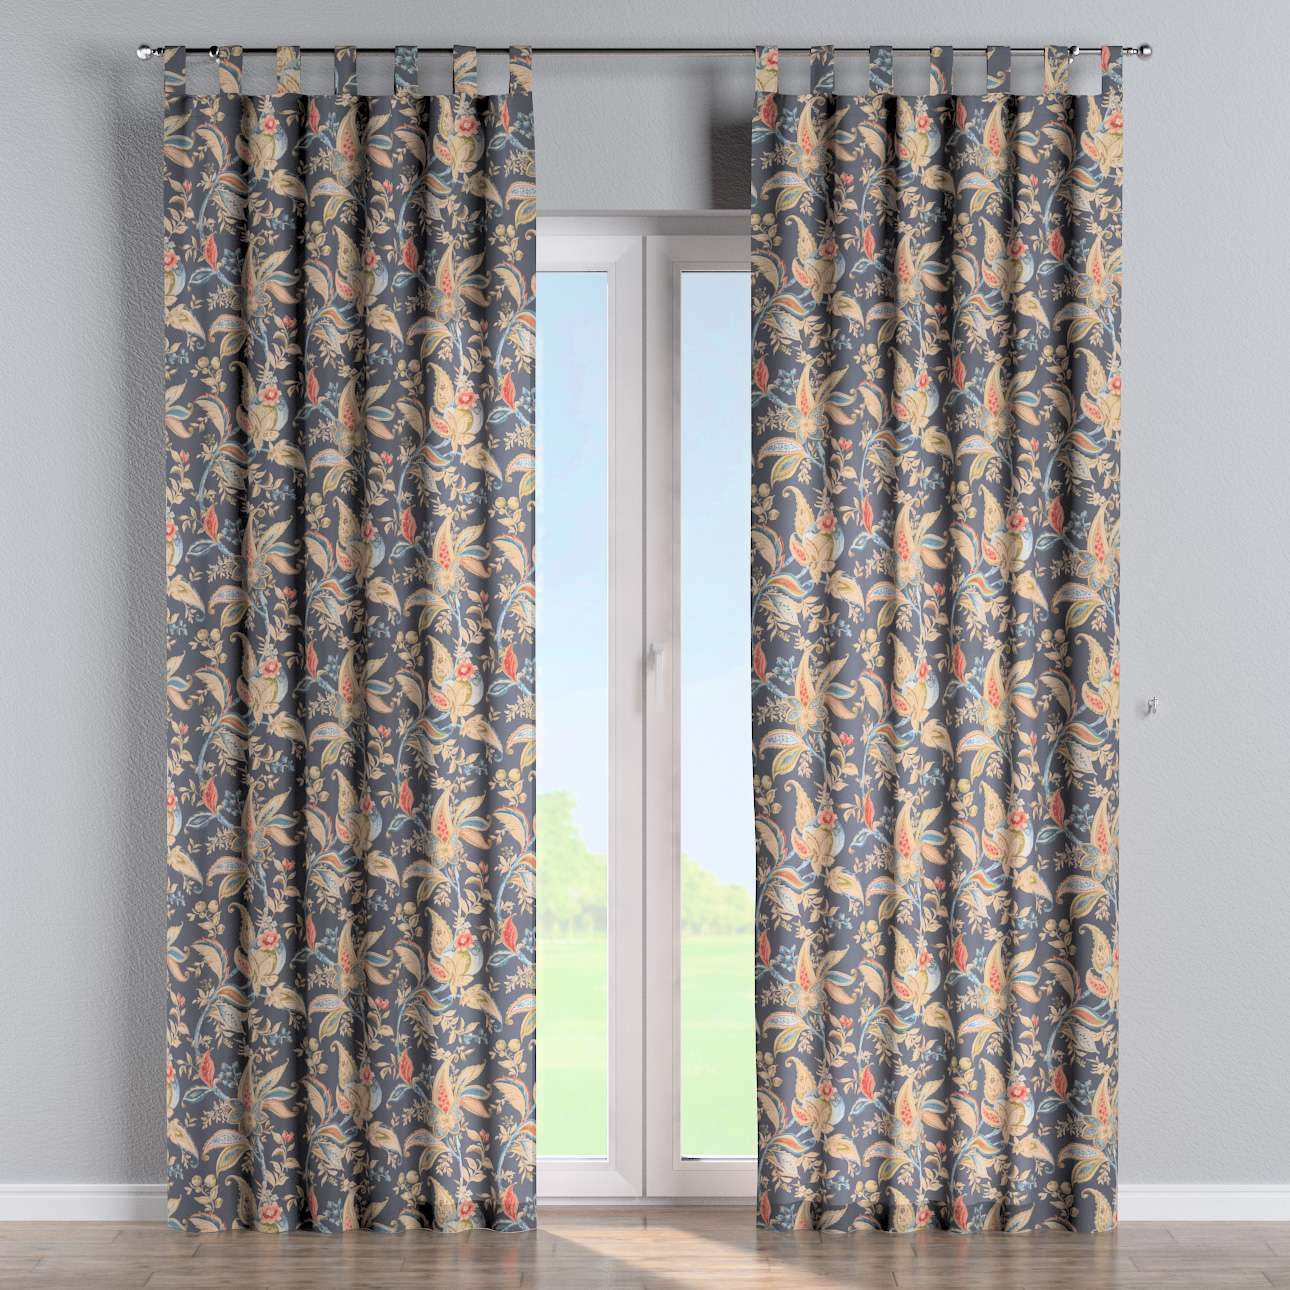 Tab top curtains in collection Gardenia, fabric: 142-19